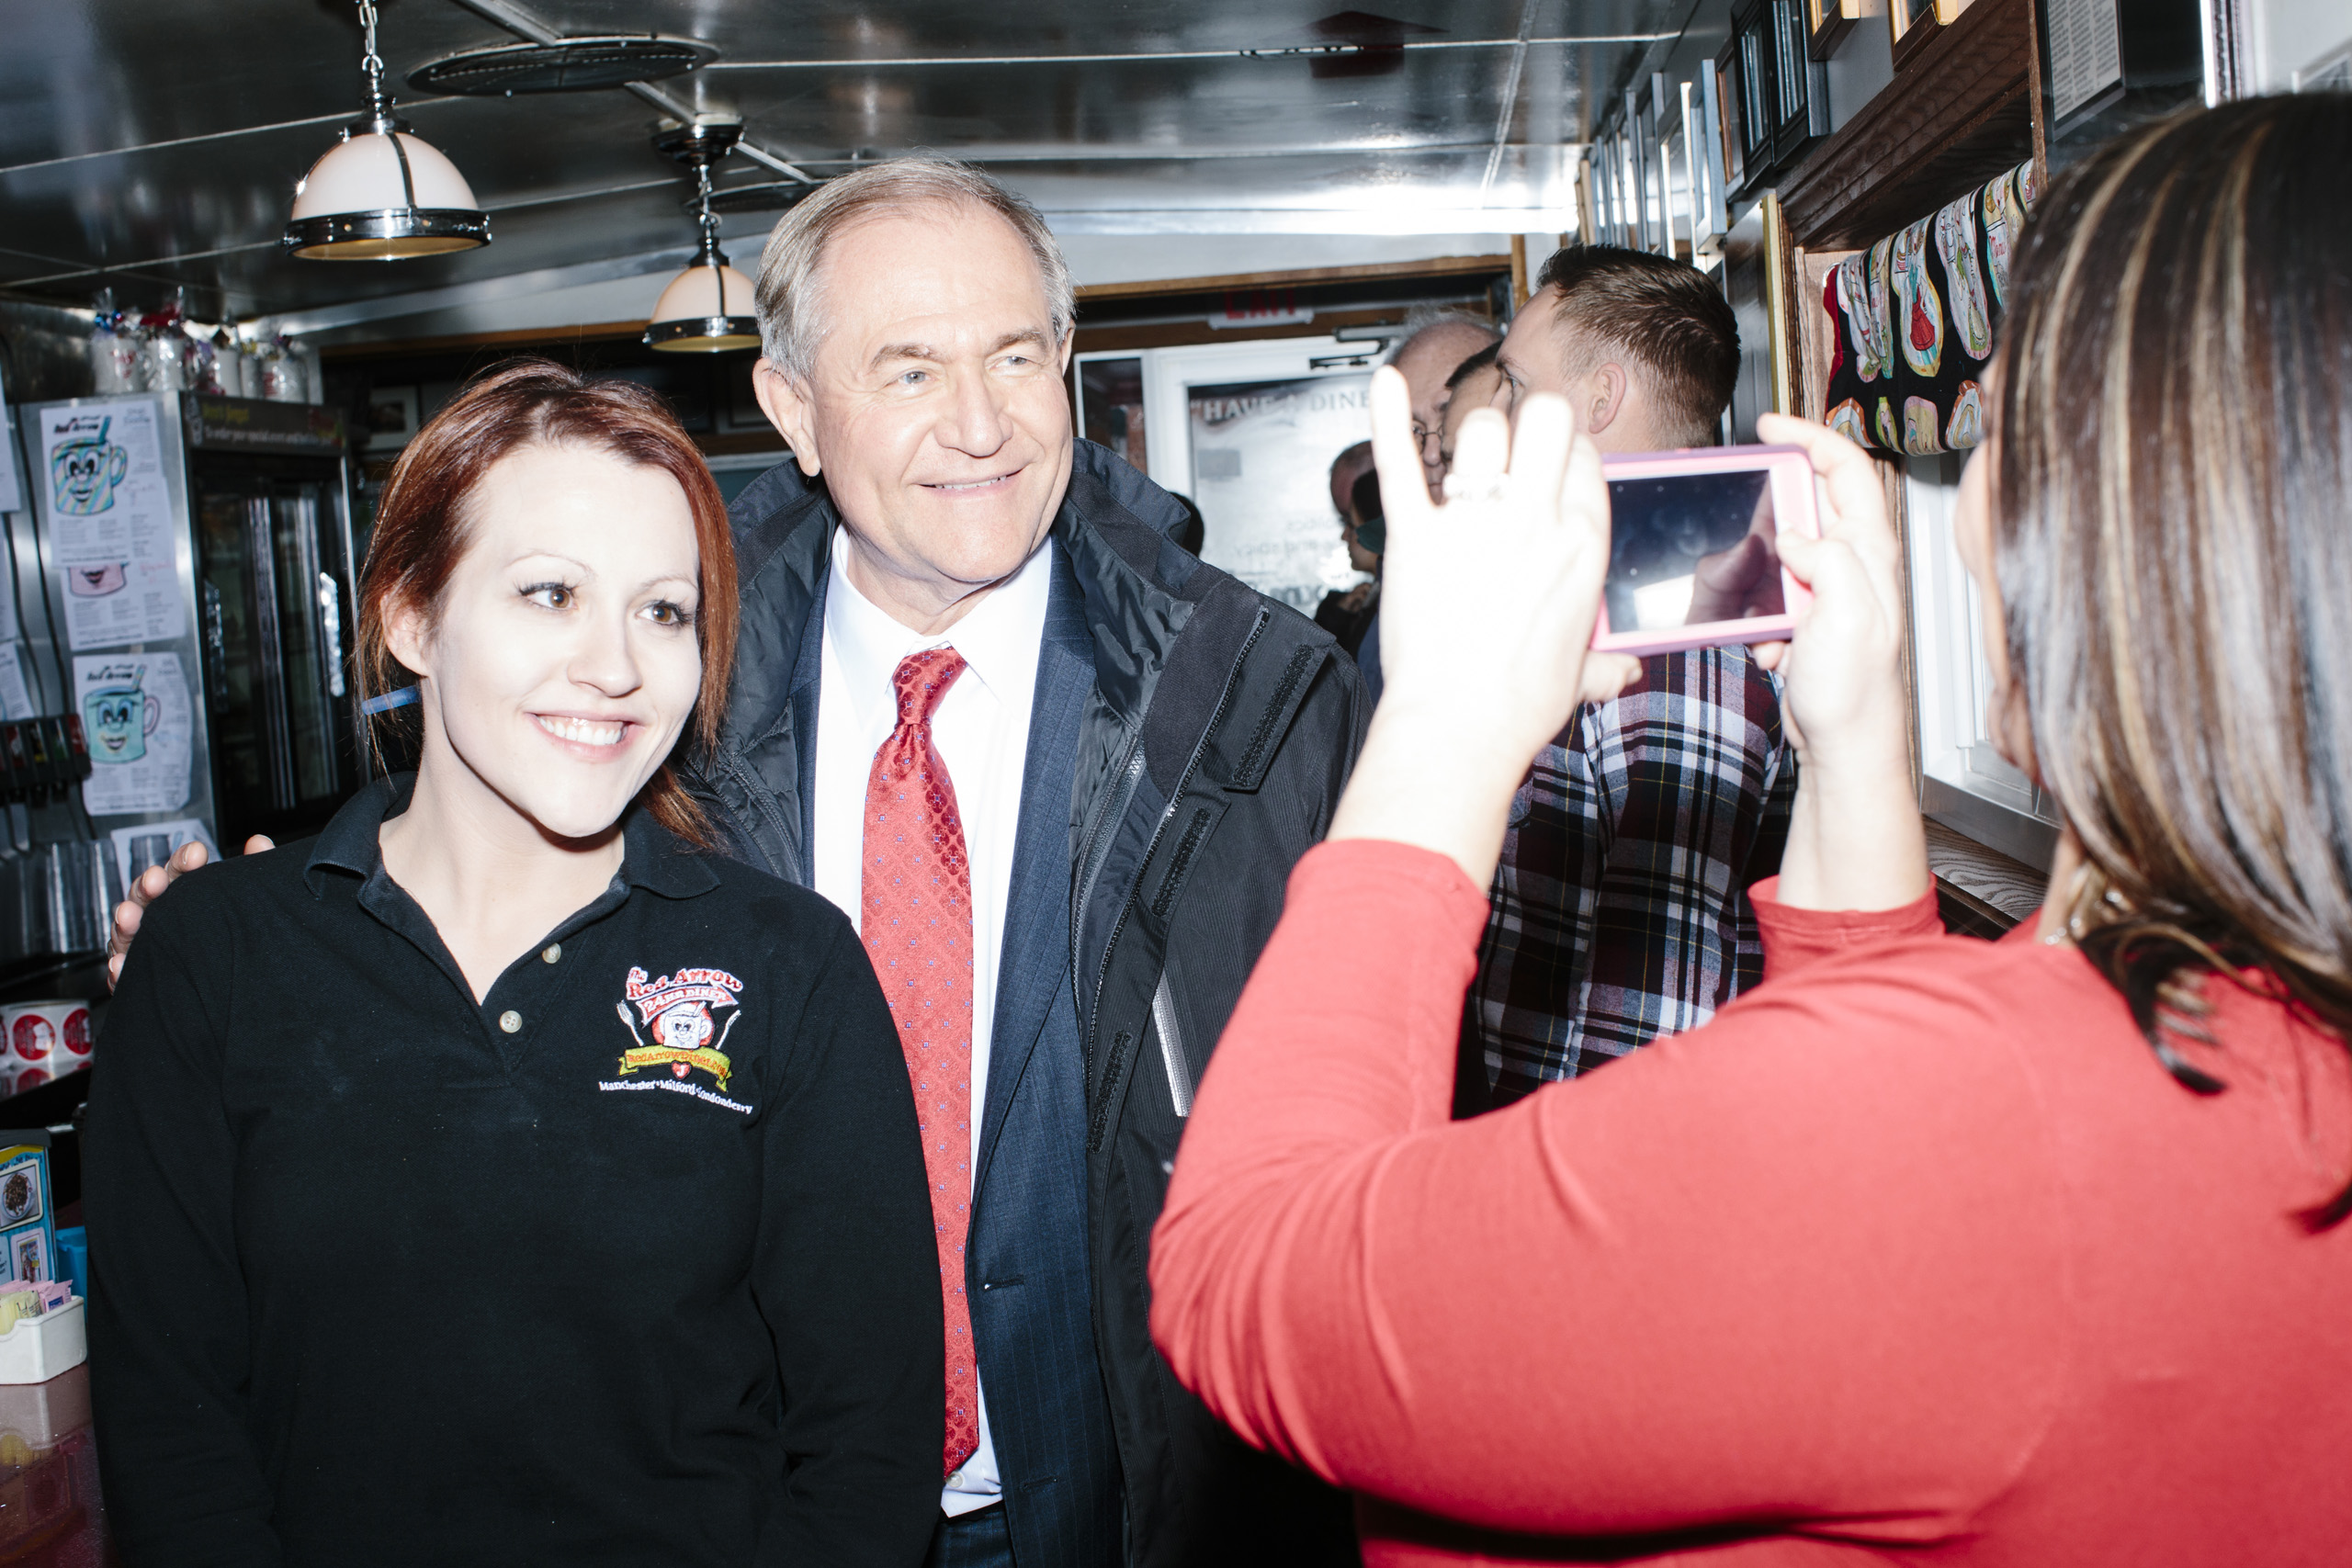 Former Virginia governor and Republican presidential candidate Jim Gilmore poses for a picture with general manager Jayme Lemay, of Nashua, NH, at the Red Arrow Diner in Manchester, New Hampshire, on Mon., Feb. 8, 2016. The Red Arrow Diner is a frequent stop of political candidates. Sirius XM was broadcasting live from the diner Monday and Tuesday.